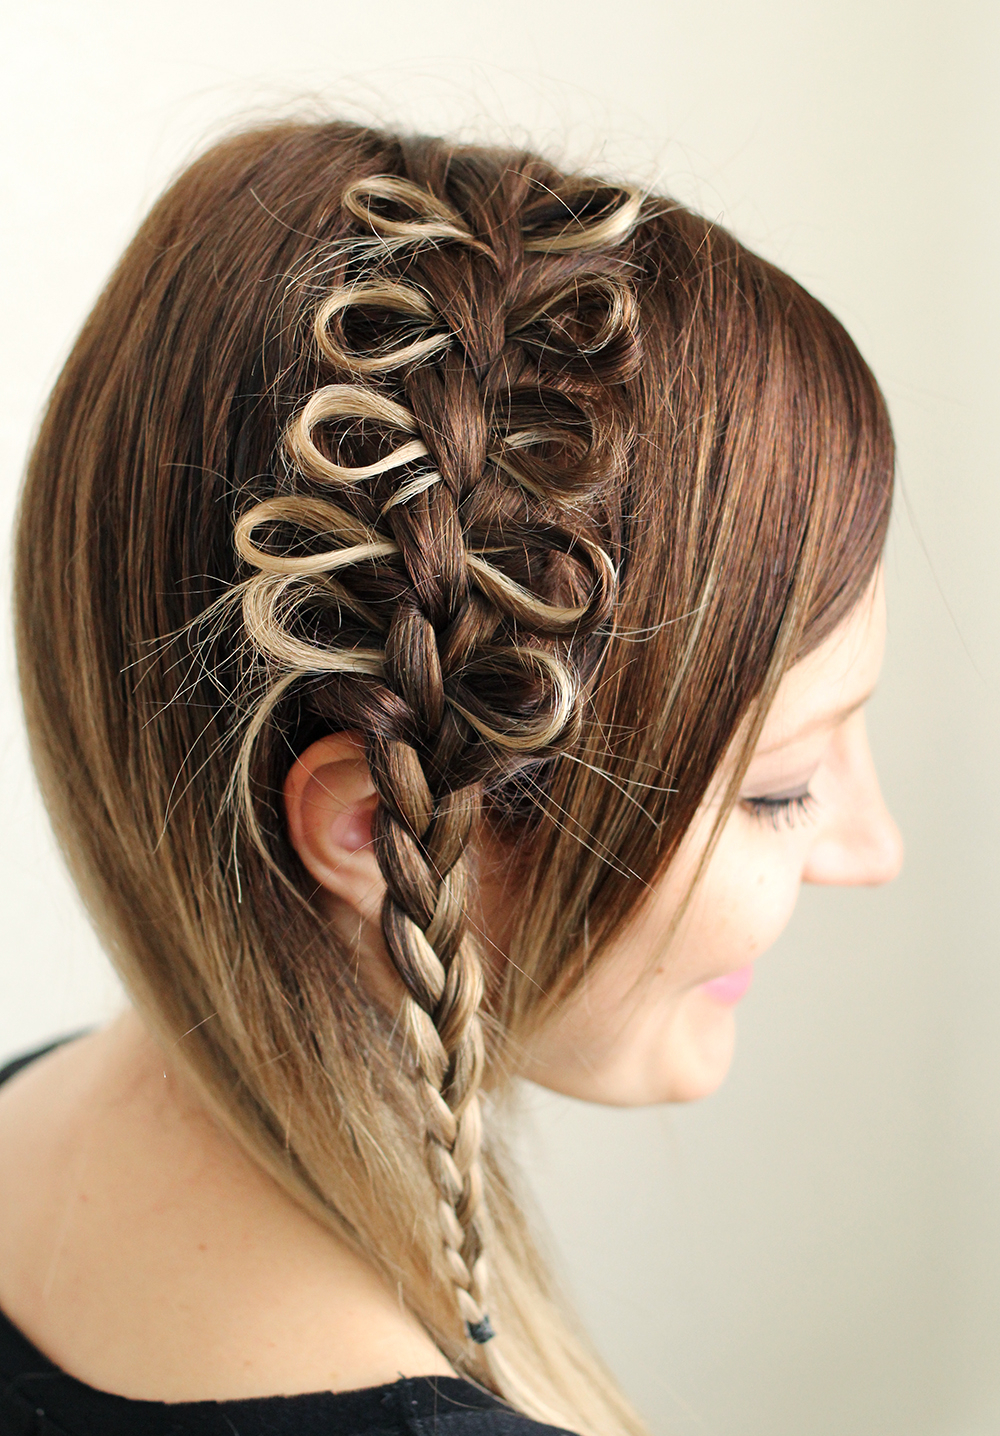 40 Different Types Of Braids For Hairstyle Junkies And Gurus Within Preferred Blooming French Braid Prom Hairstyles (View 5 of 20)